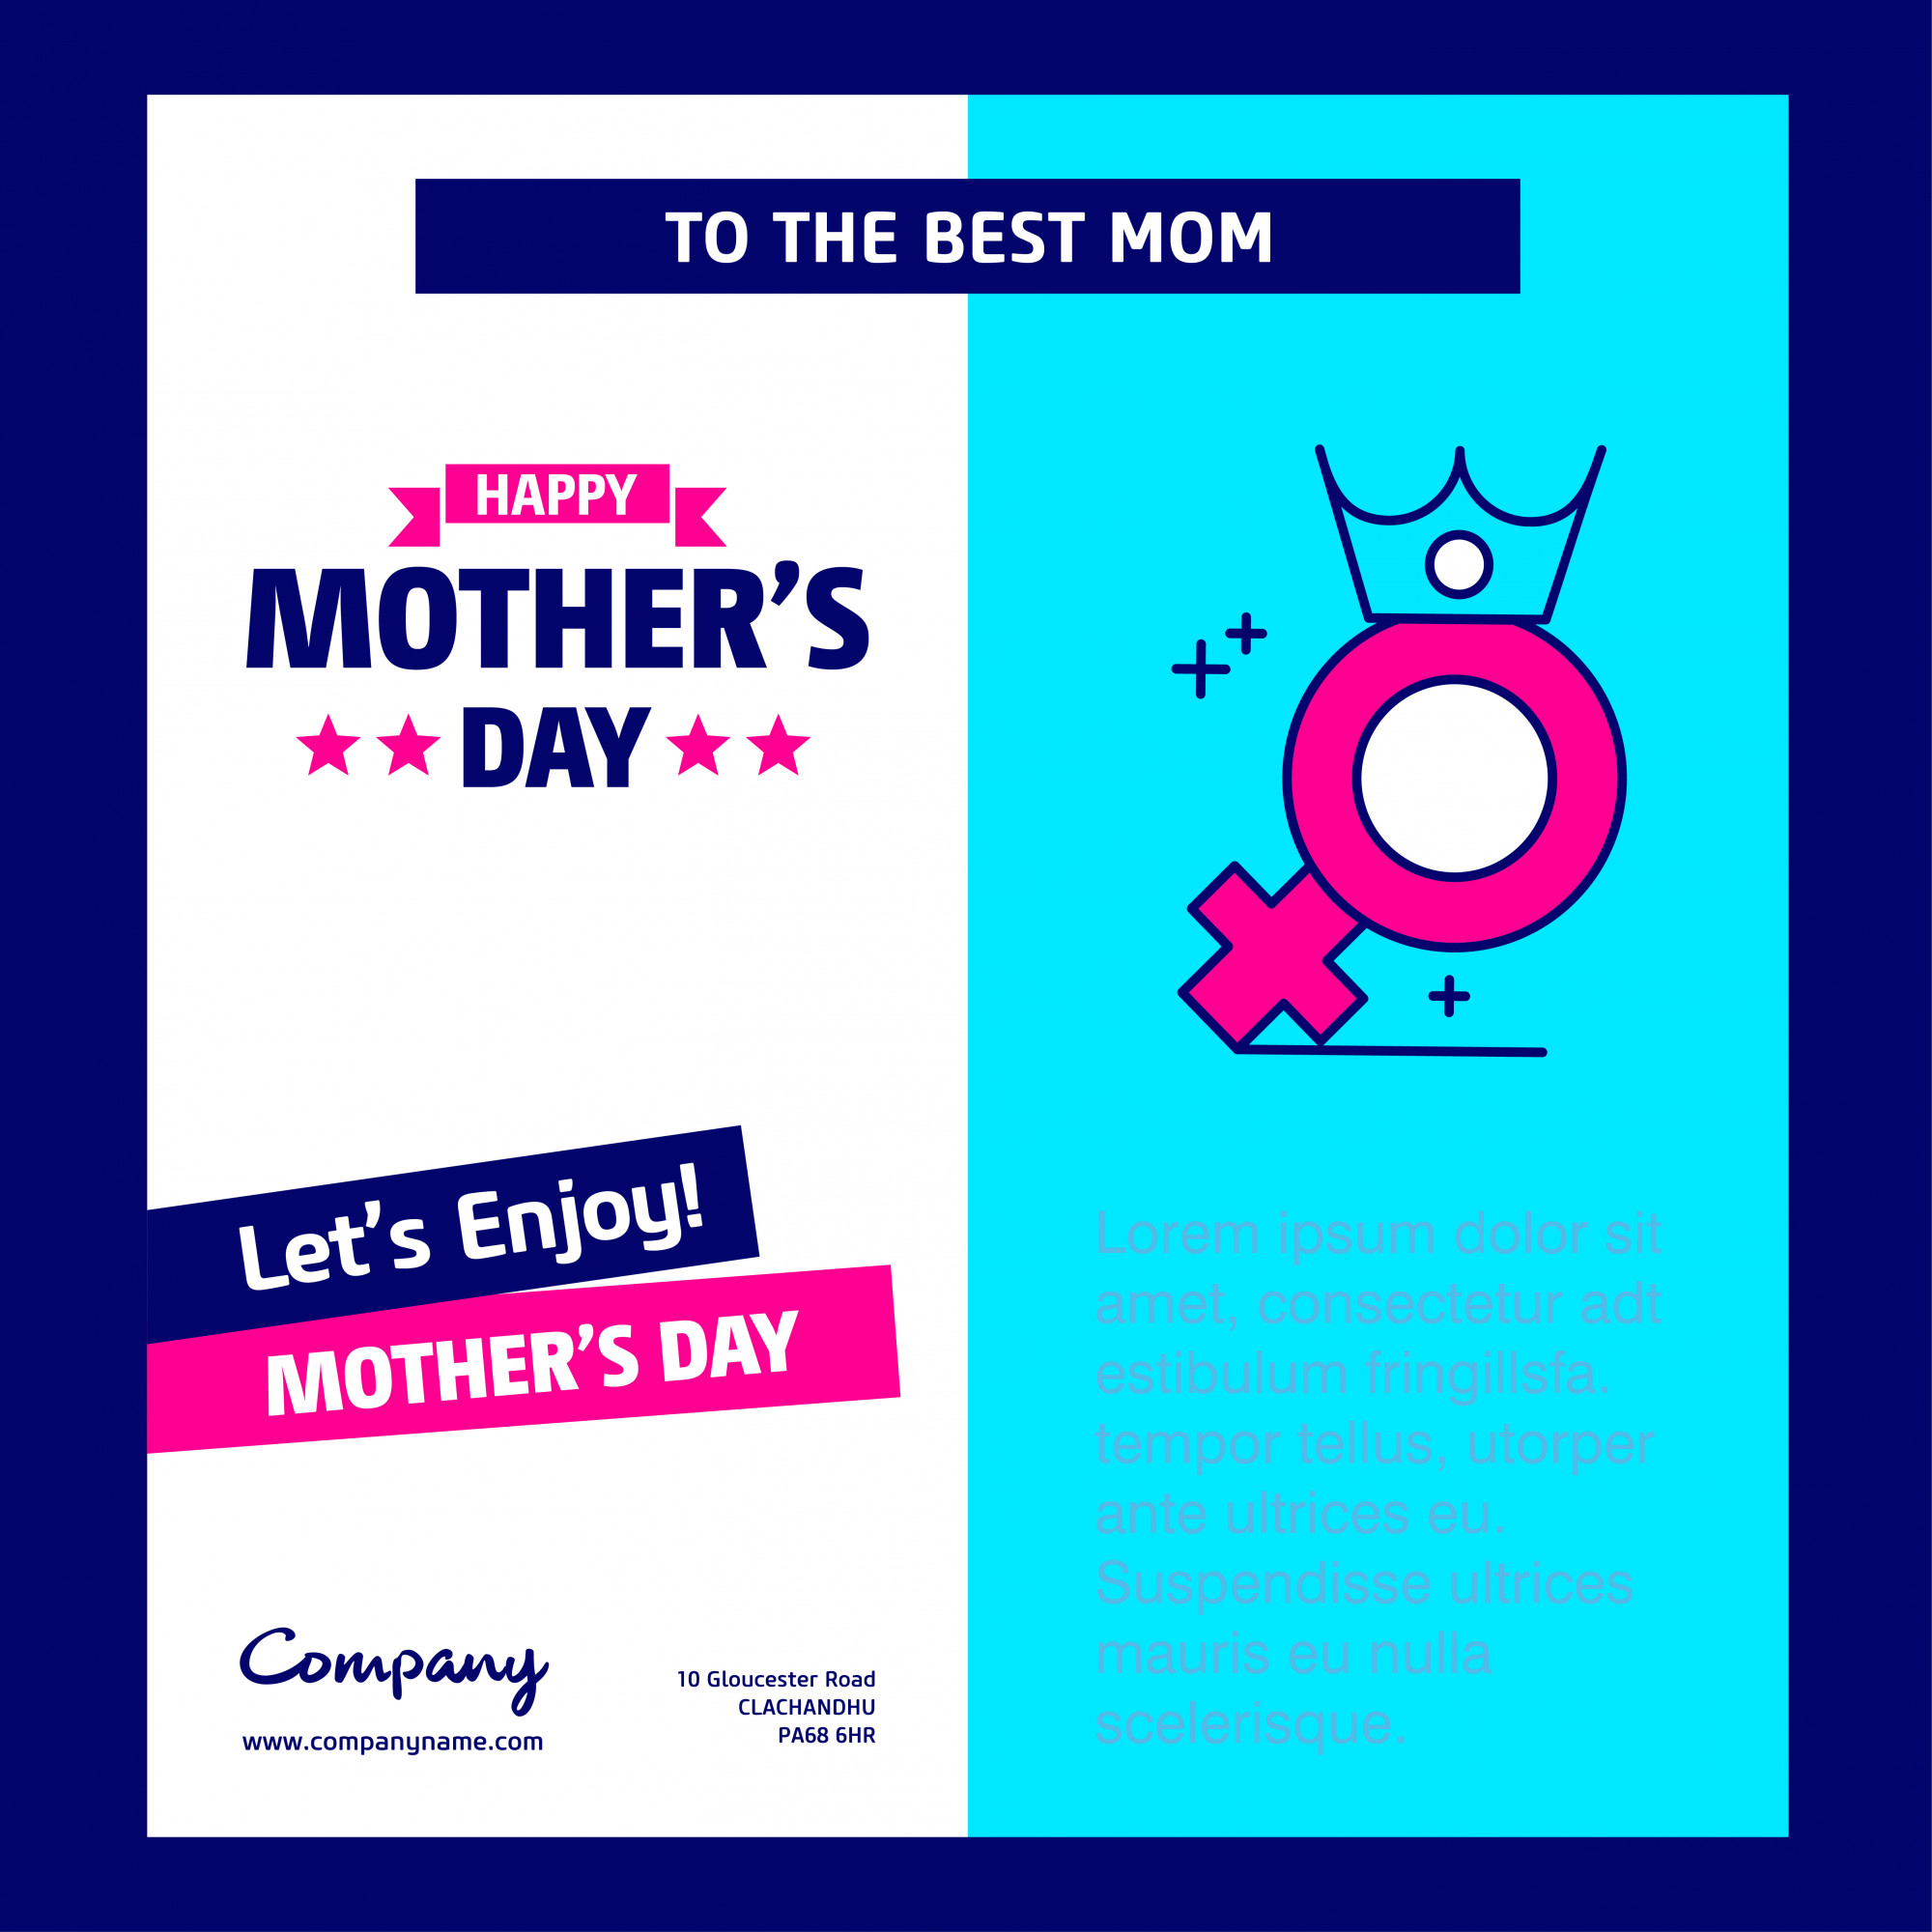 Happy Mother's day greetings card